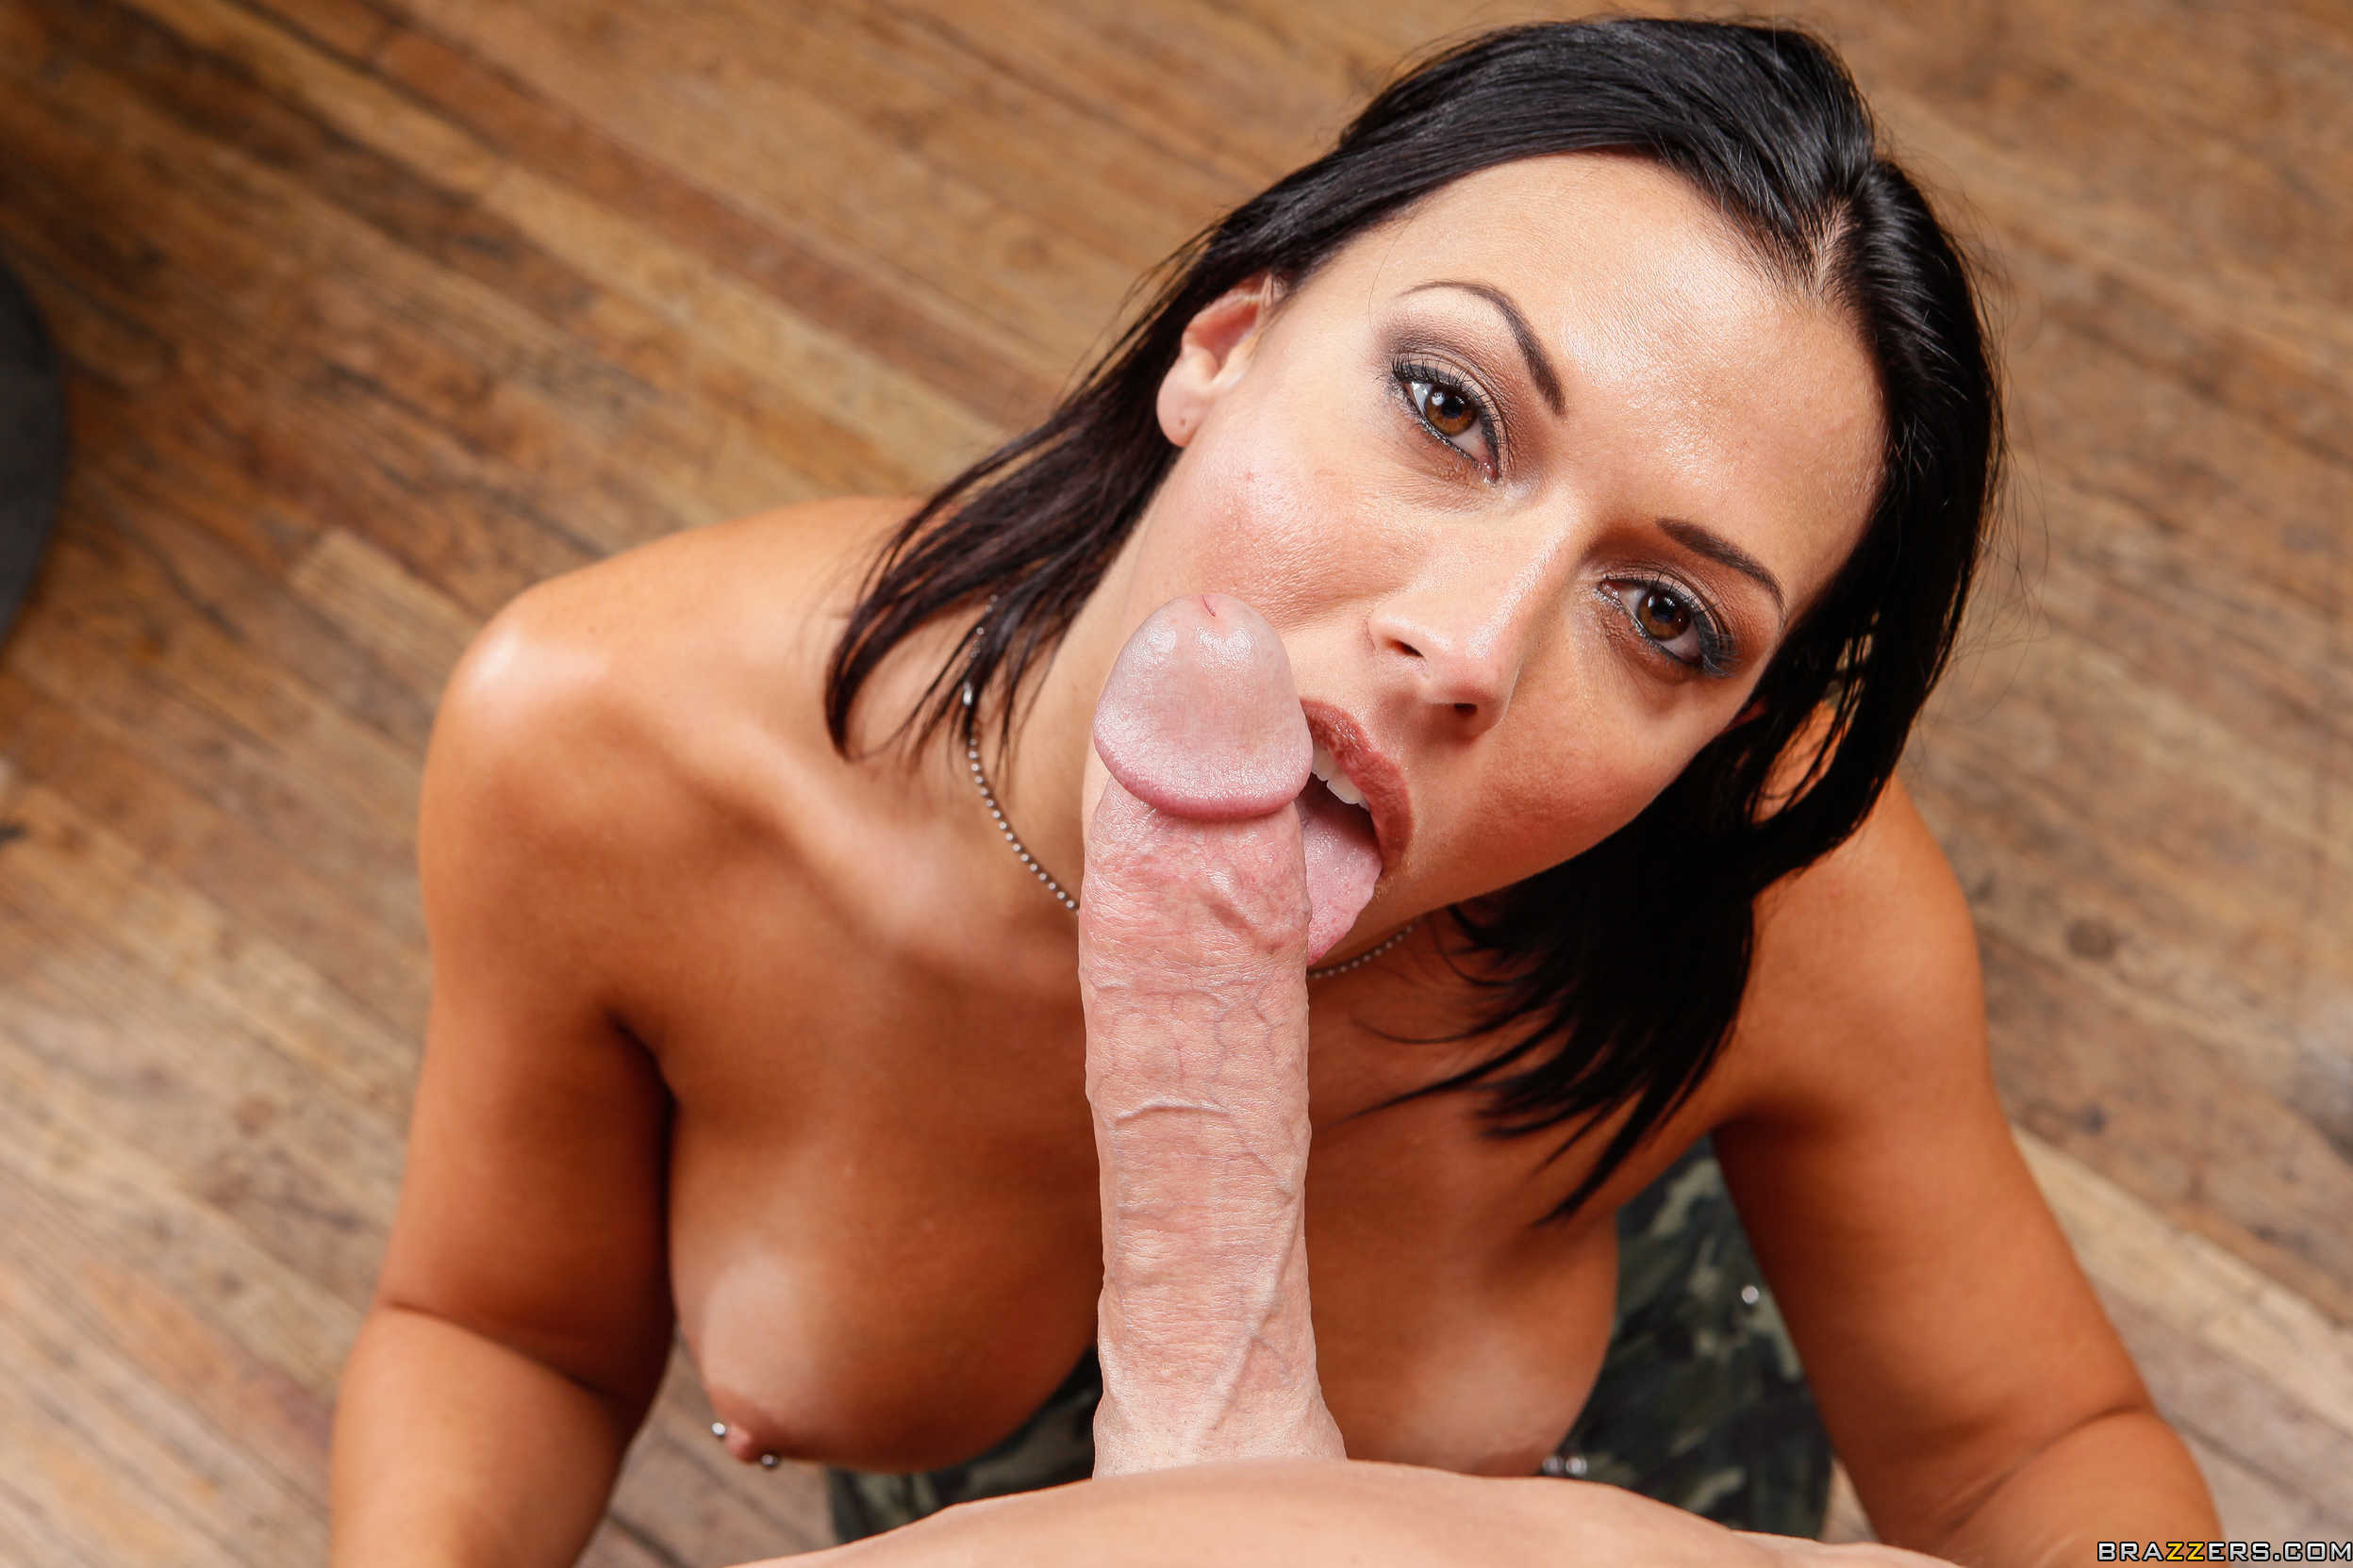 like sensual people. Are You Tired Of Online Hookup all natural beauty these